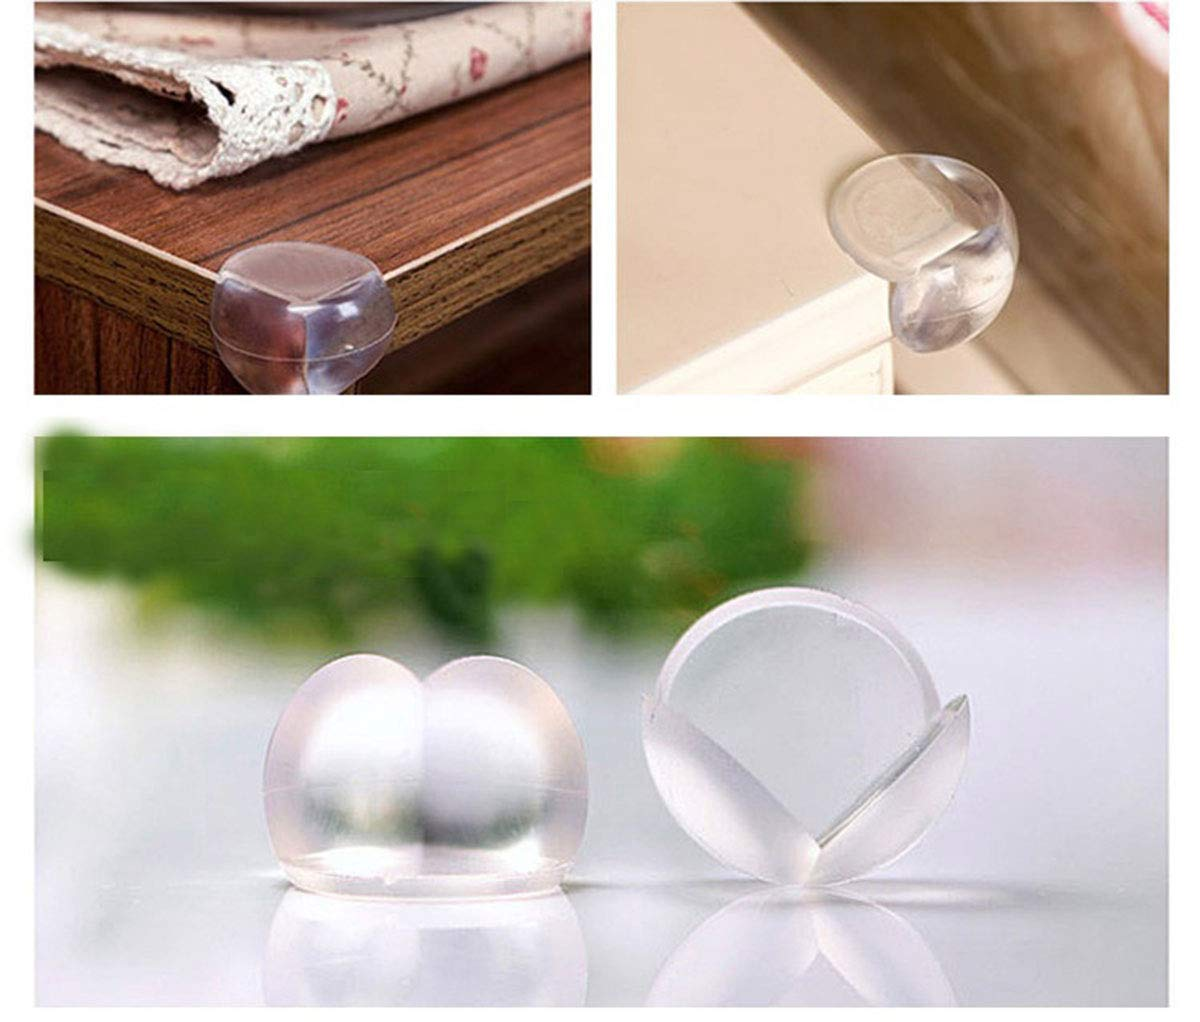 Square Accod Safety Corner Protectors Guards Table Corner Guards Soft Transparent PVC Table Corner Guard Cushion with 3M Adhesive for Baby and Kids-12 Pack